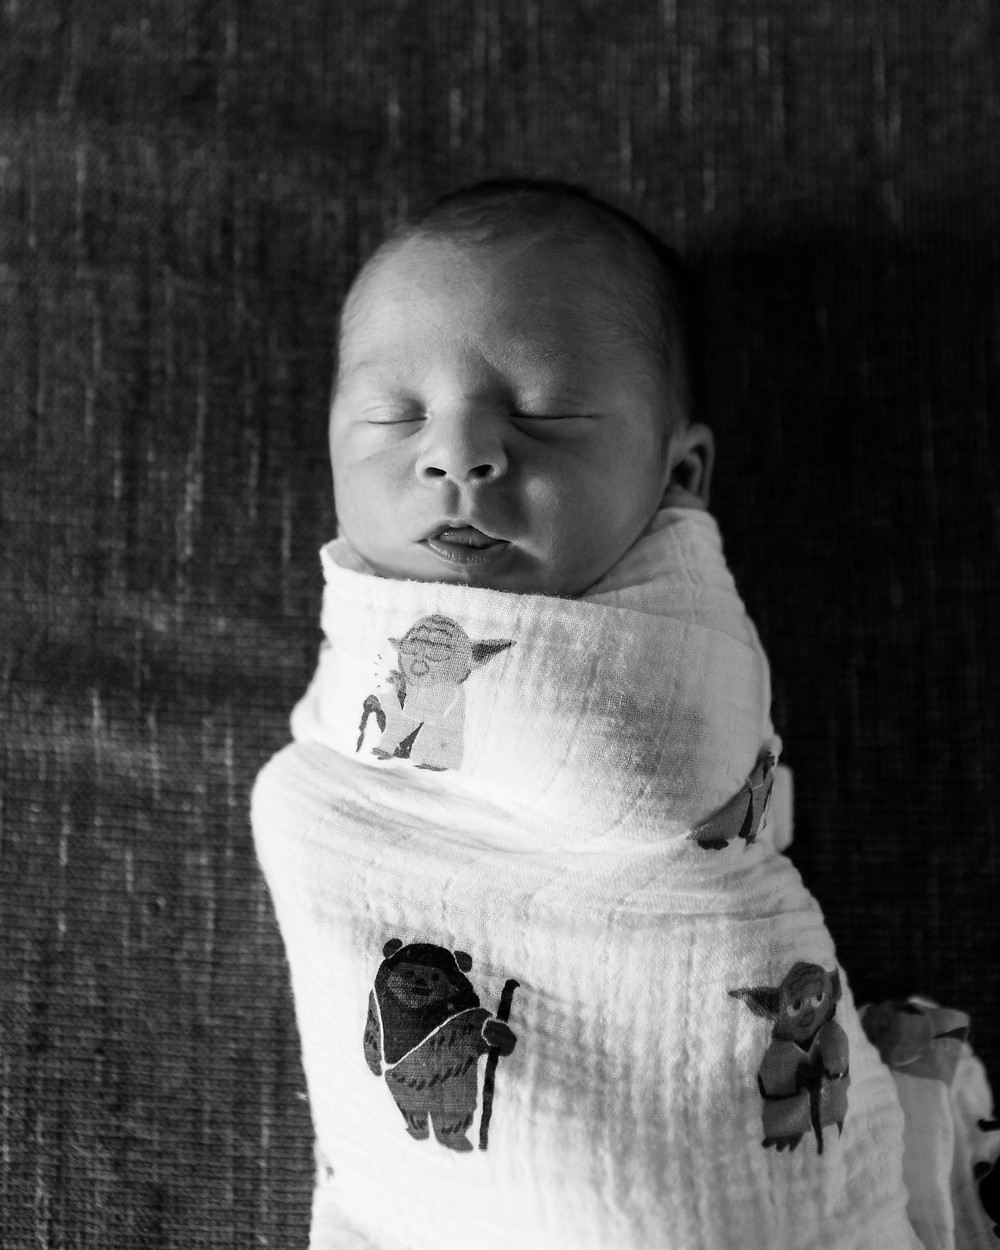 black and white image of a newborn baby boy with his mouth slightly open, wrapped in a Yoda and Ewok swaddle